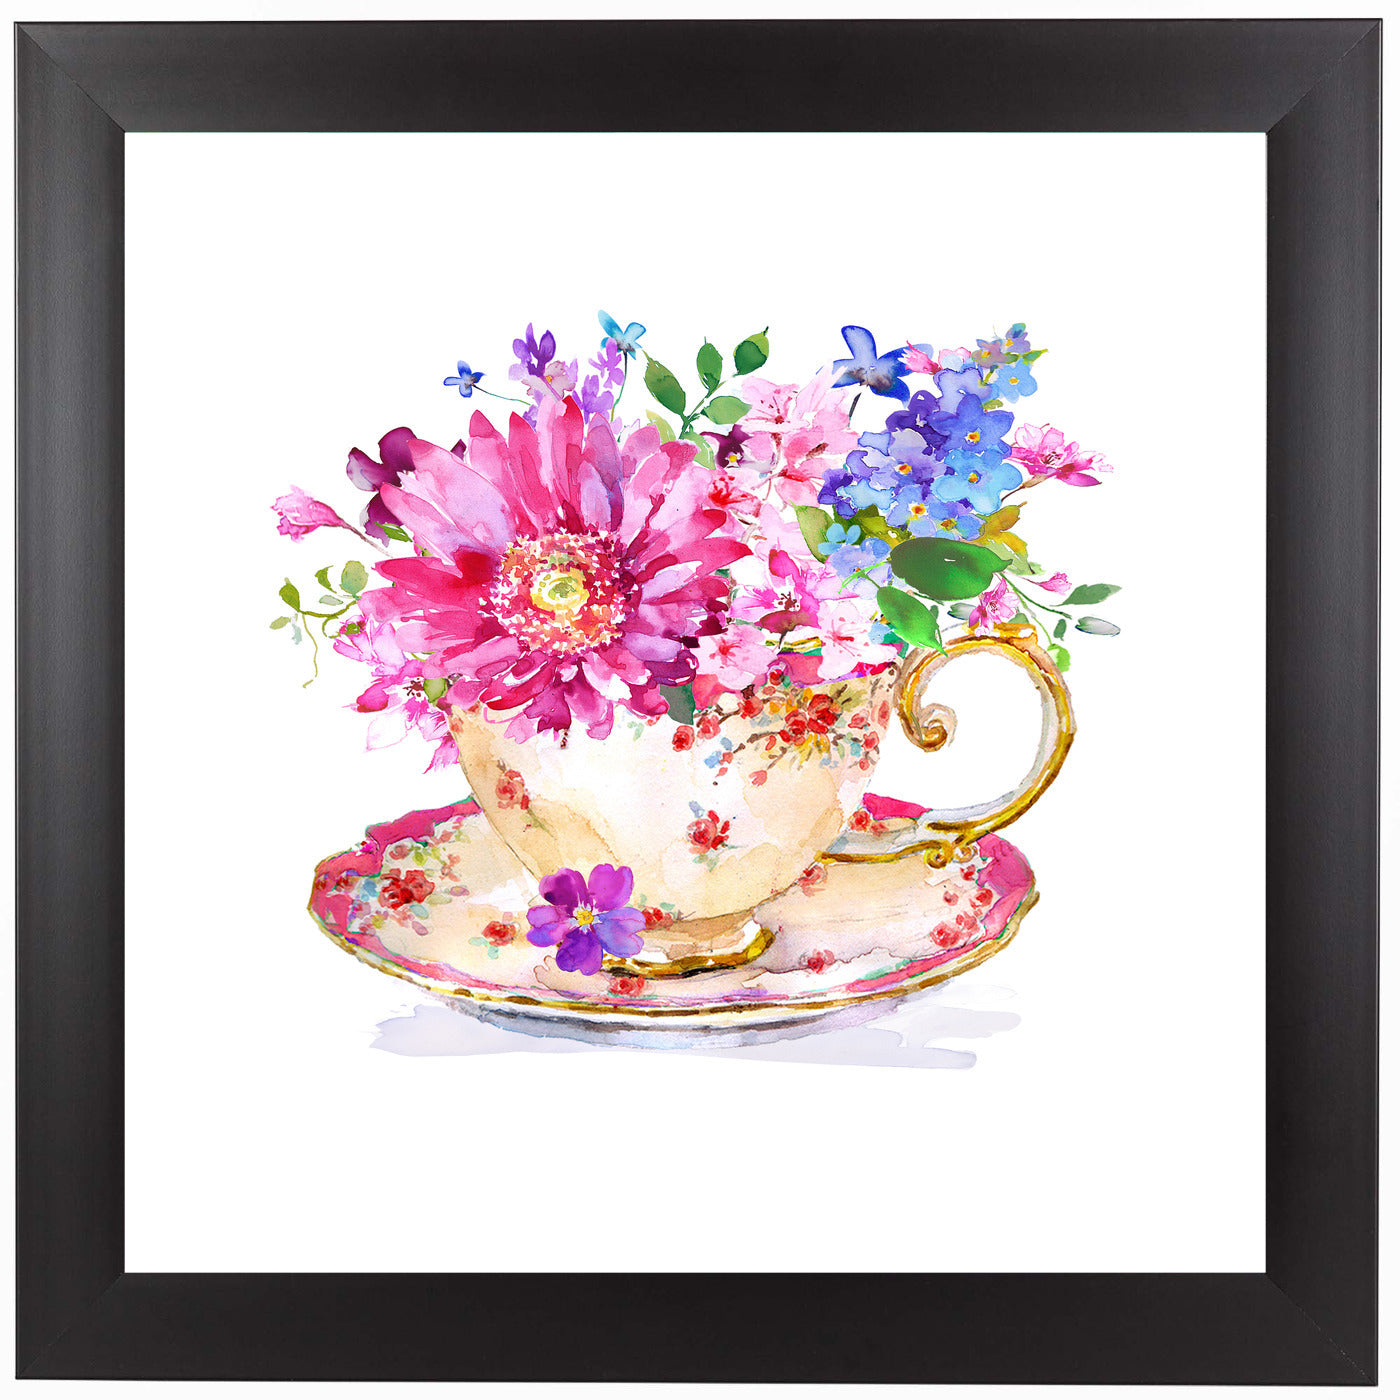 Vintage Cup Floral by Harrison Ripley Framed Print - Wall Art - Americanflat